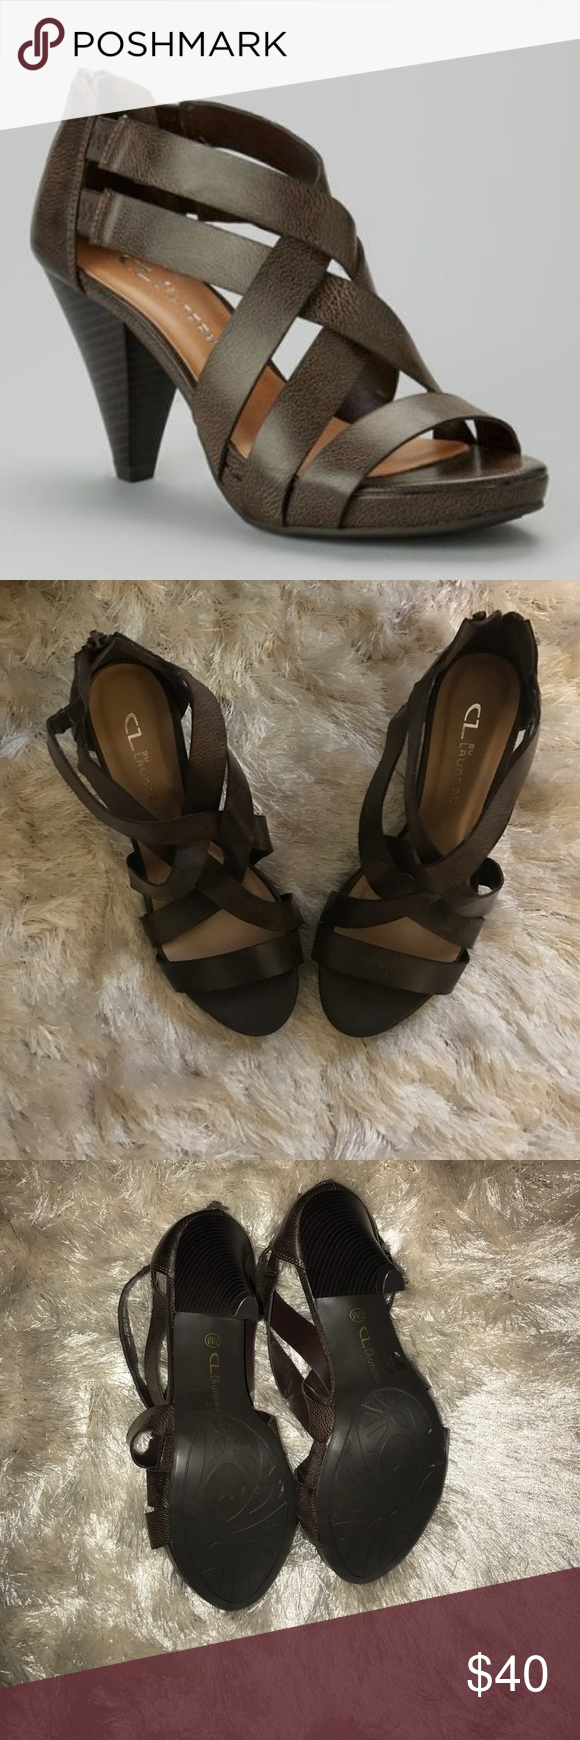 CL by Laundry dark brown sandals sz 7.5 Cute and comfy sandals! Chinese Laundry Shoes Sandals